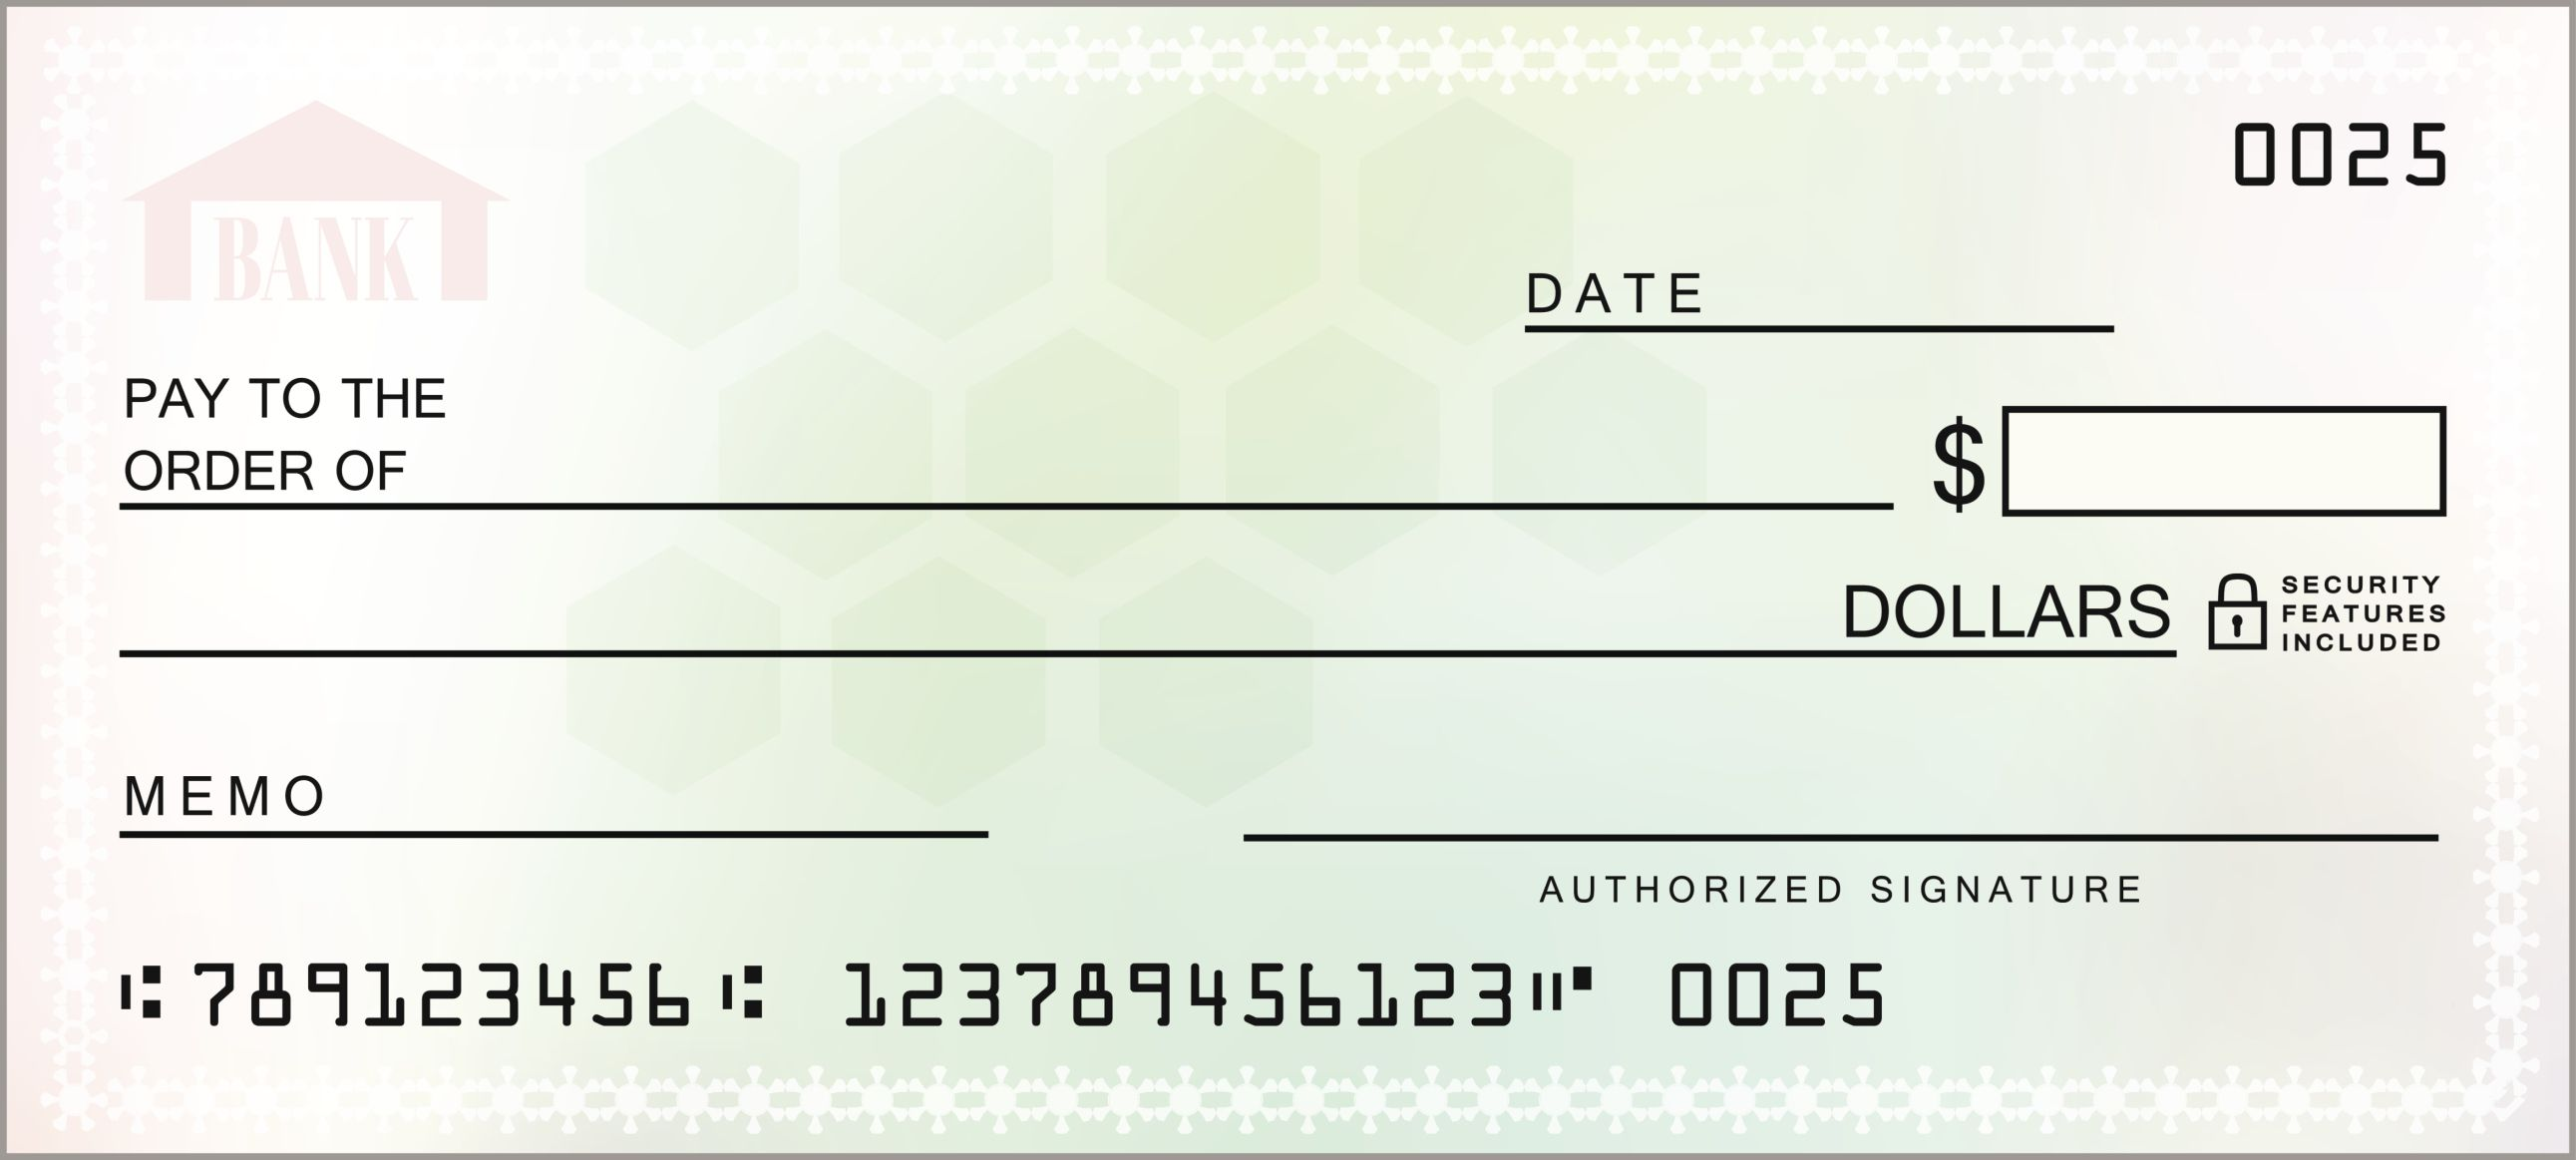 This is an image of Shocking Printable Business Checks